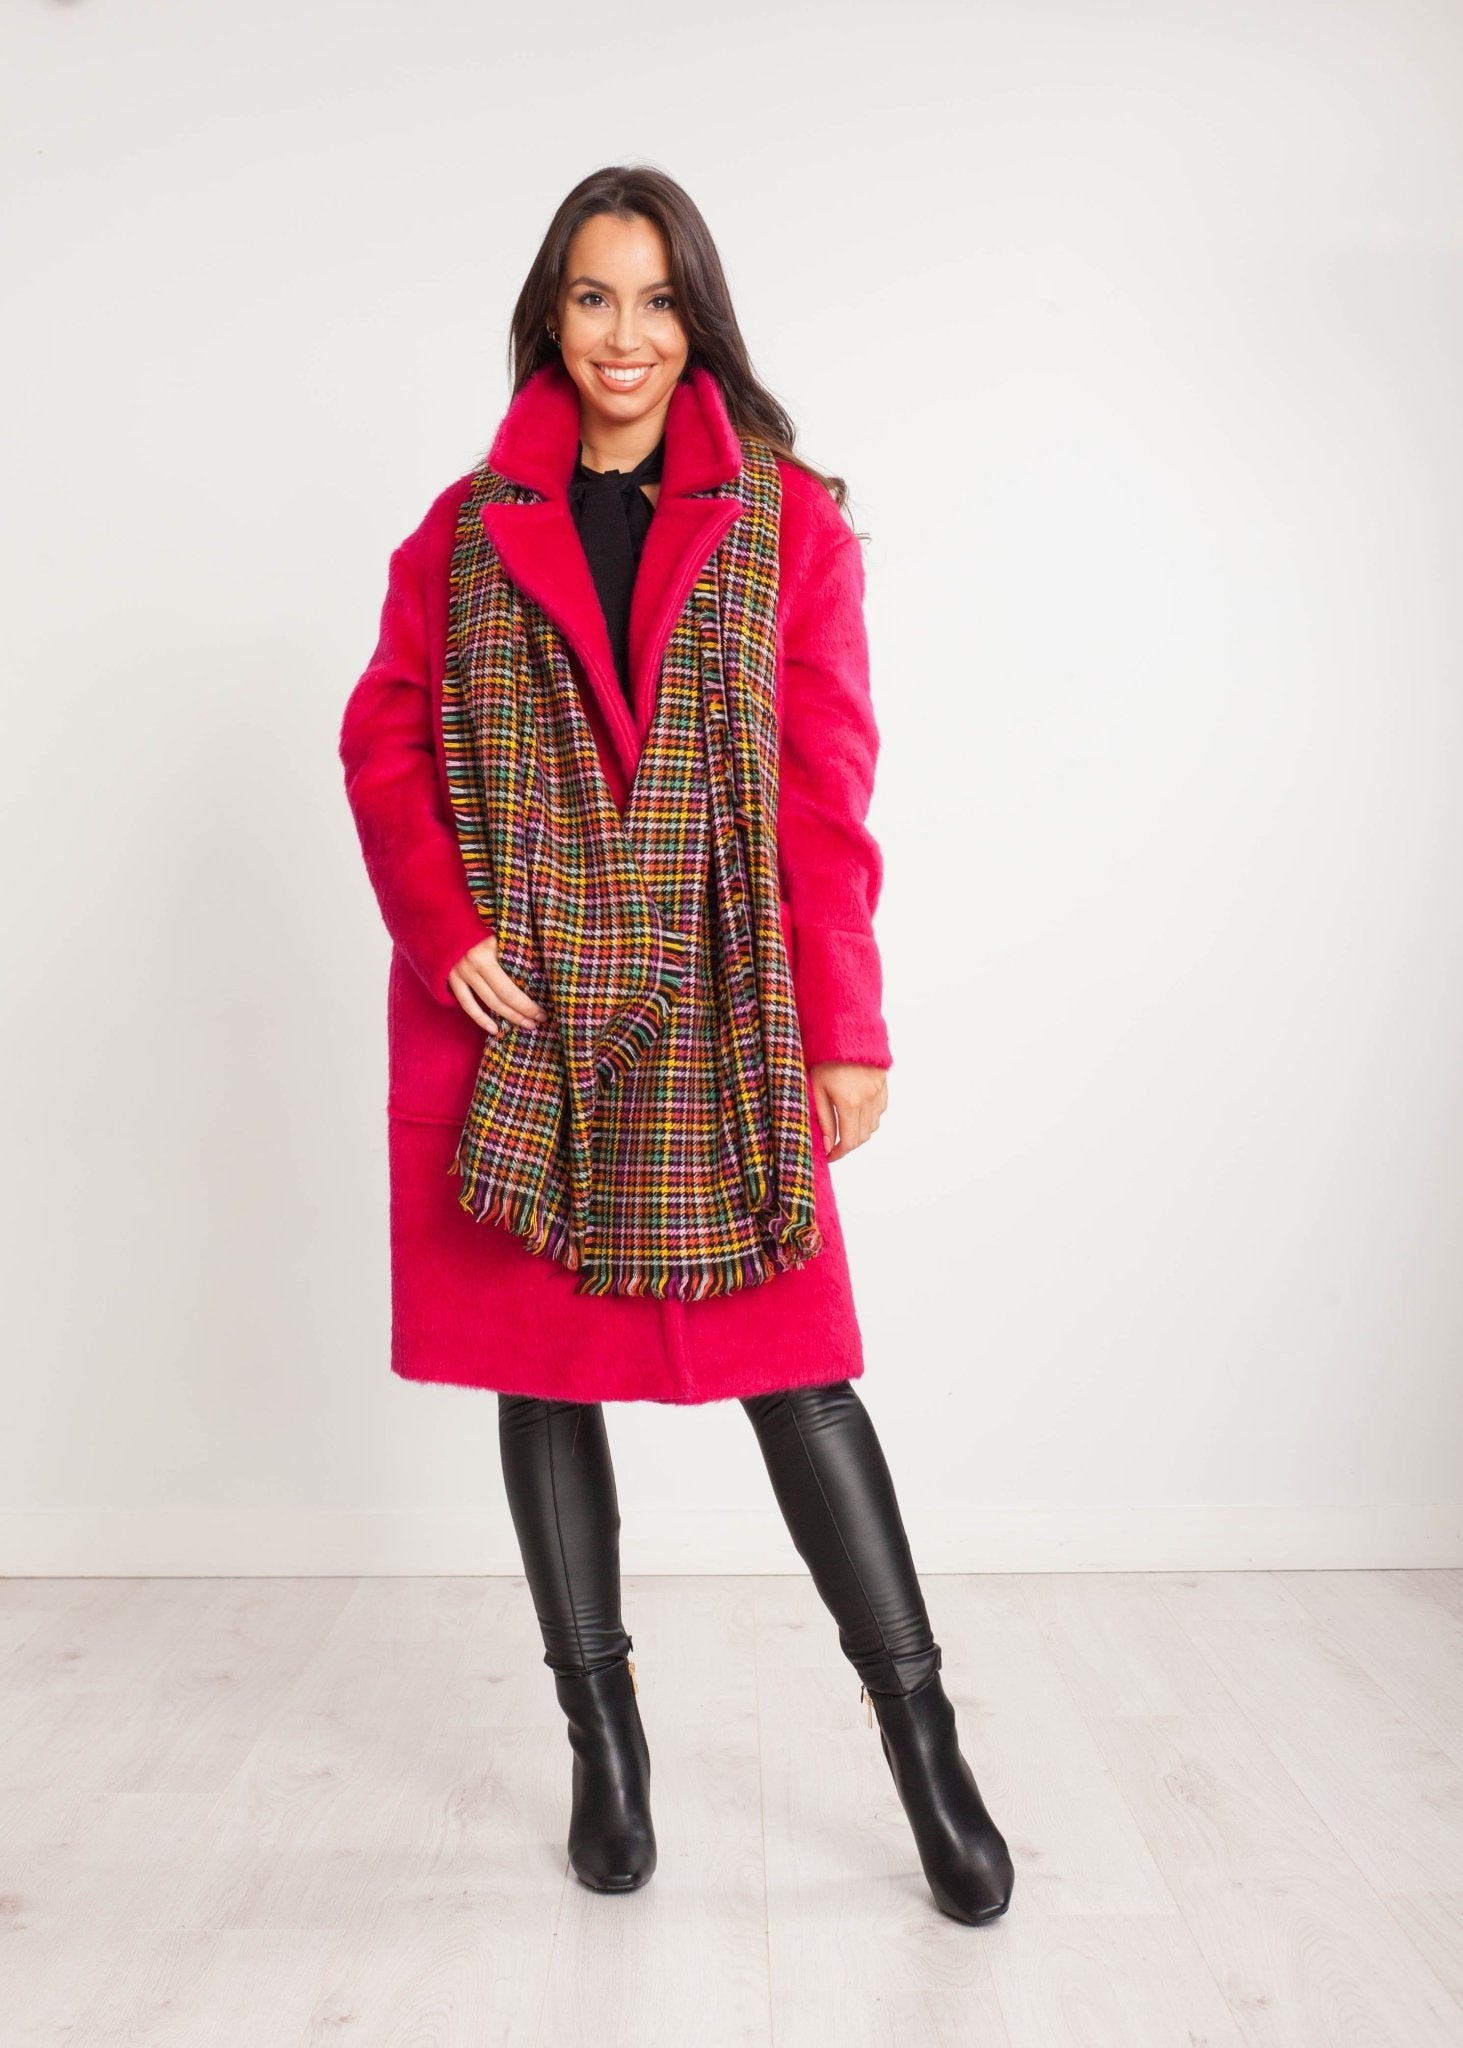 Tina Coat In Hot Pink - The Walk in Wardrobe